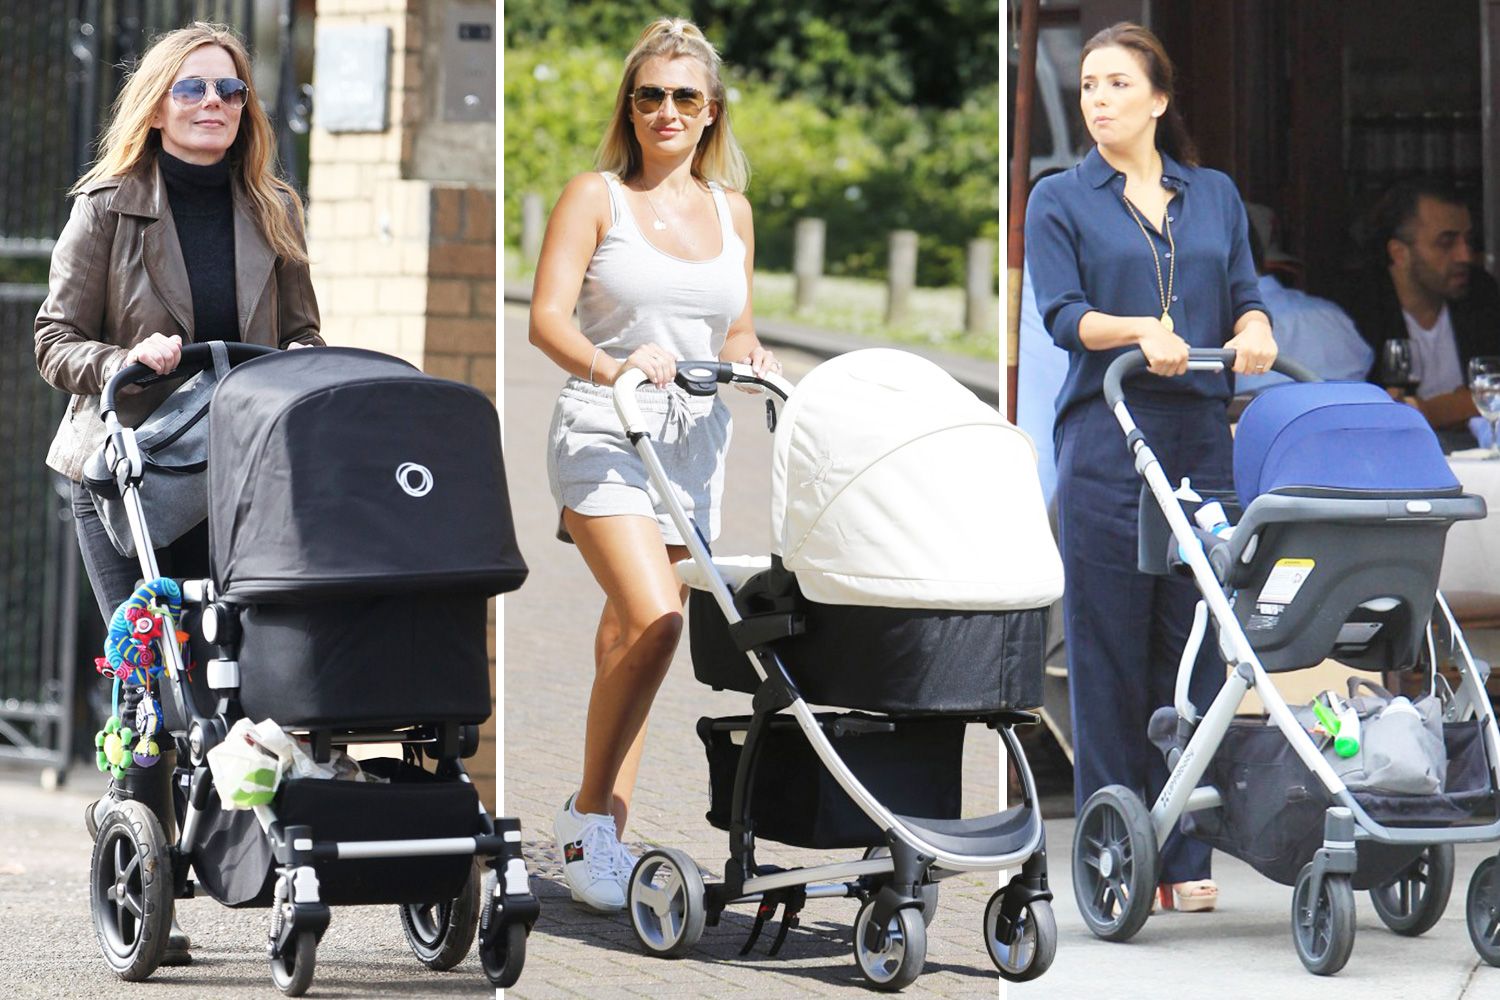 Poussette Buggy Nuna We Take A Look At The Pricey Puschairs Chosen By Image